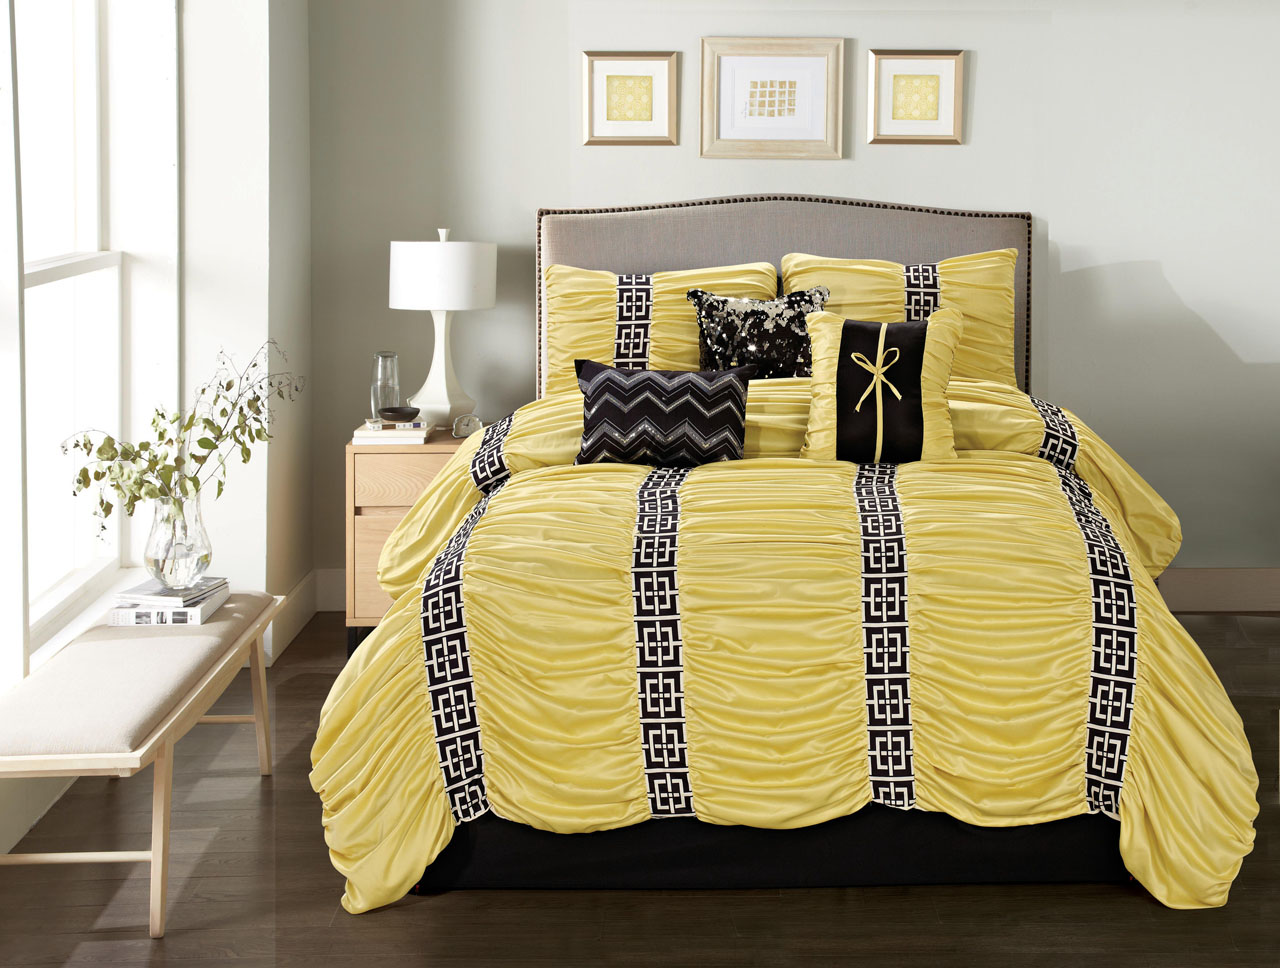 Yellow and black bedding sets - 7 Piece Queen Harley Yellow Black Comforter Set